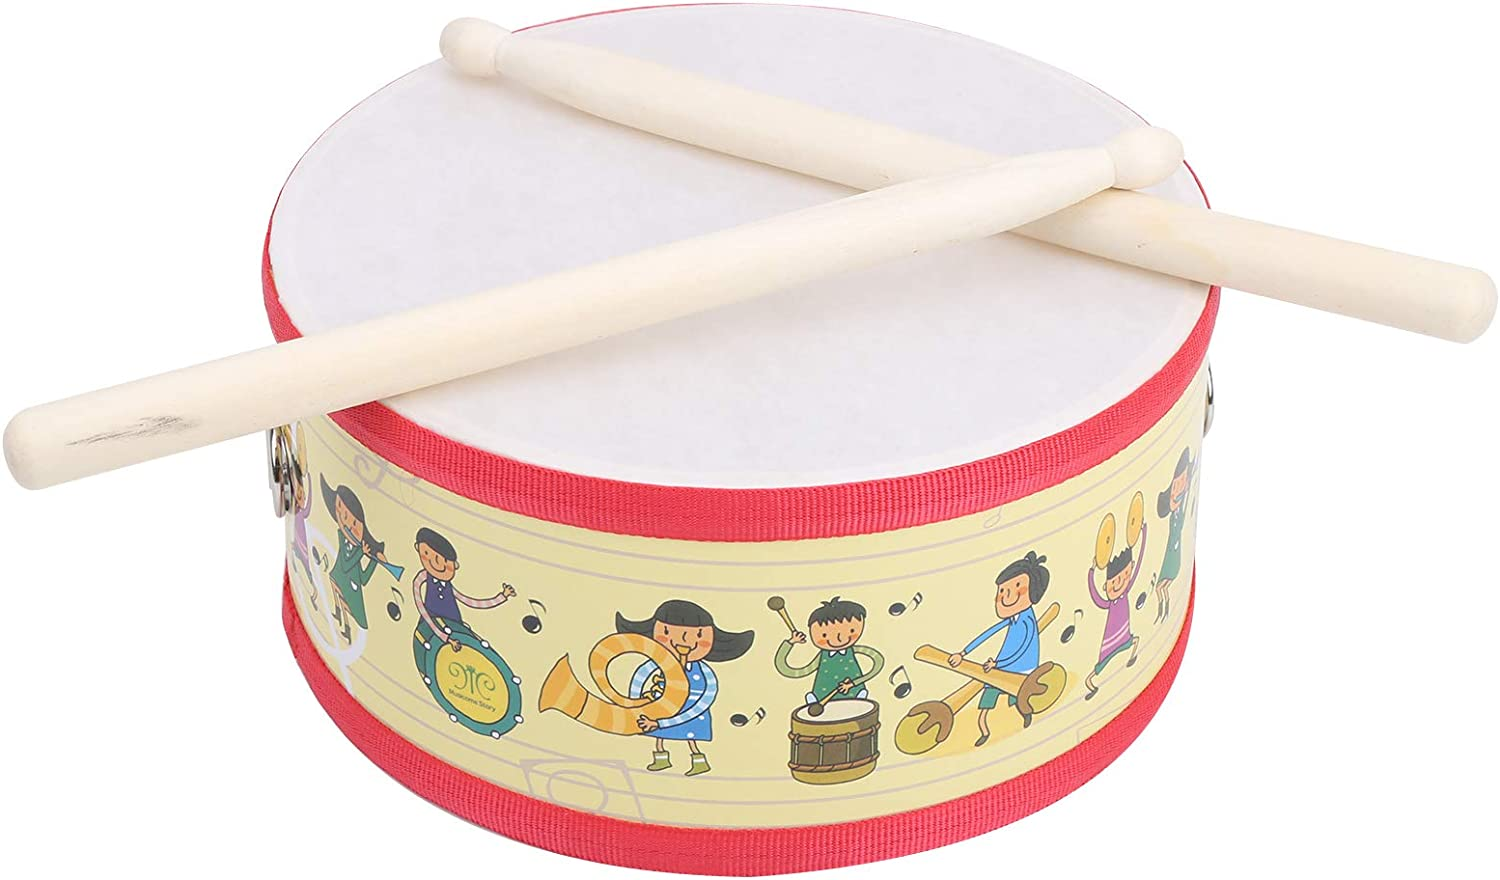 Sturdy Double‑Sided Drum Musical for Limited time Long Beach Mall sale P Instrument Party